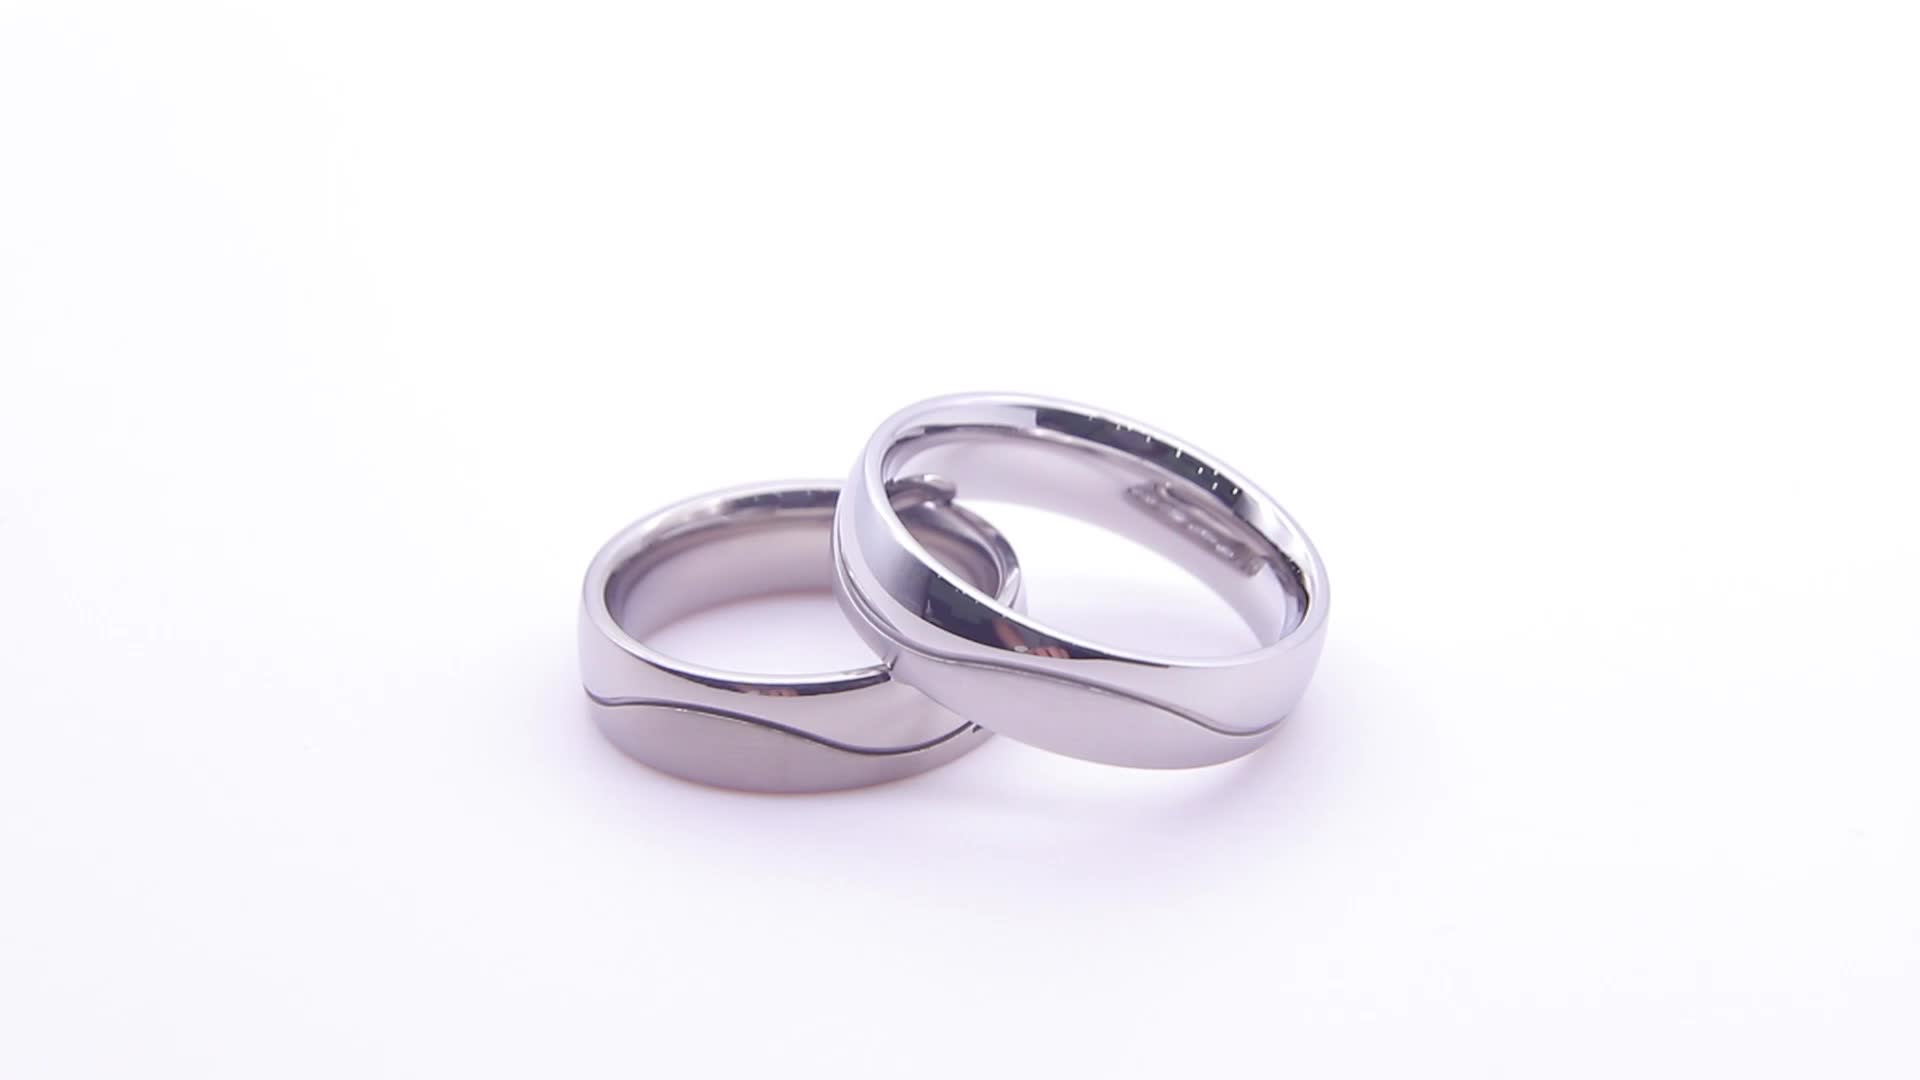 High quality Plating white gold jewelry 925 sterling silver jewelry  wedding rings for women man